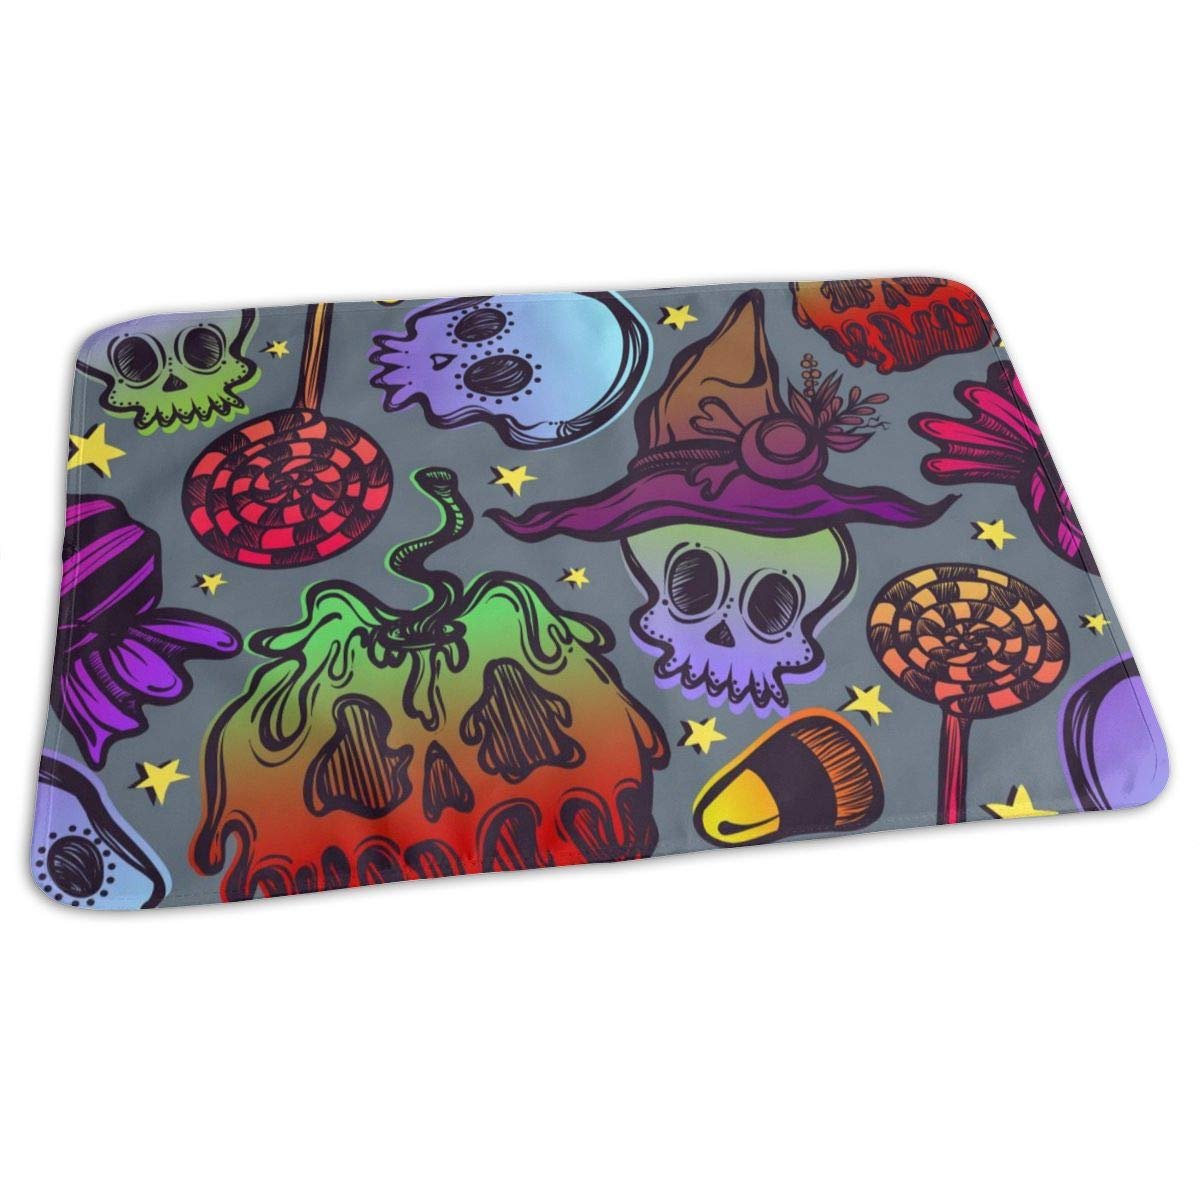 Osvbs Lovely Baby Reusable Waterproof Portable Halloween Skull Poisoning Apples and Candies Changing Pad Home Travel 27.5''x19.7'' by Osvbs